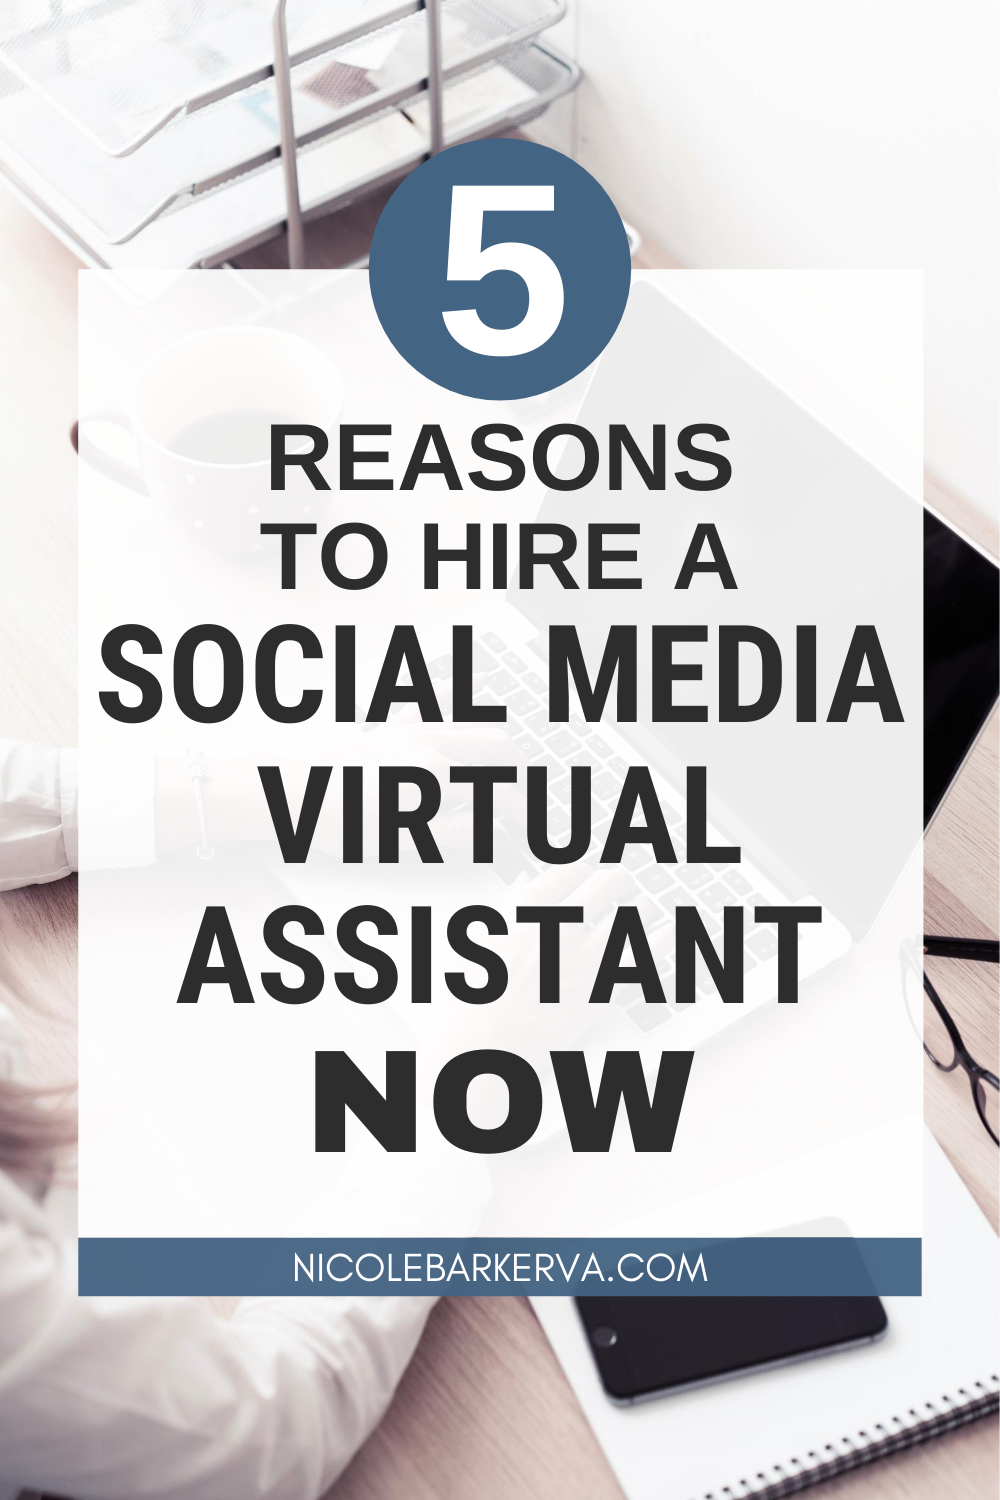 5 Reasons to Hire A Social Media Virtual Assistant